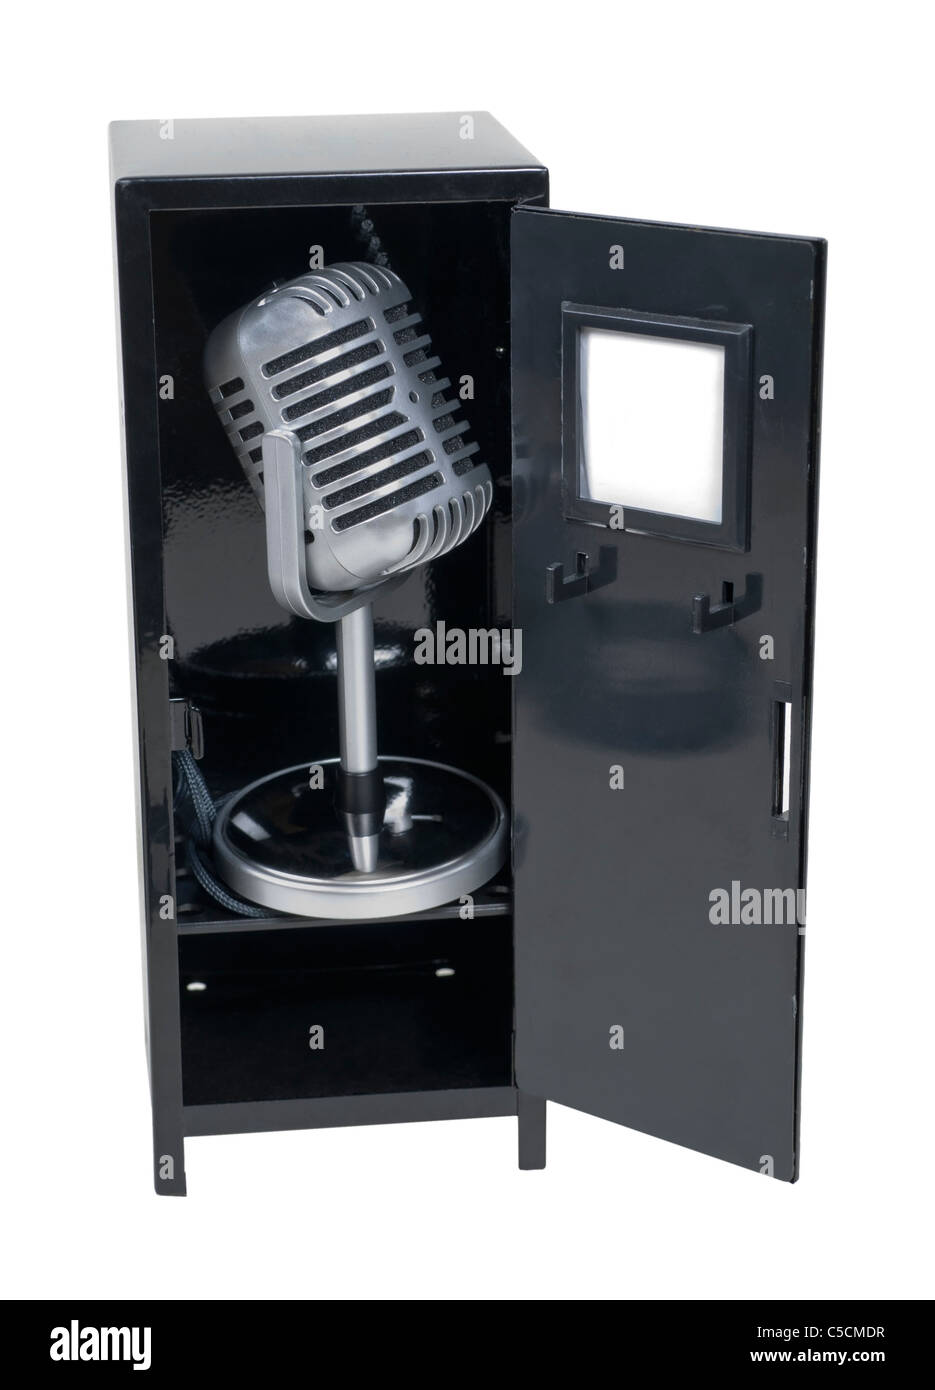 Sports announcements shown by a retro pill audio microphone in a metal locker - path included - Stock Image